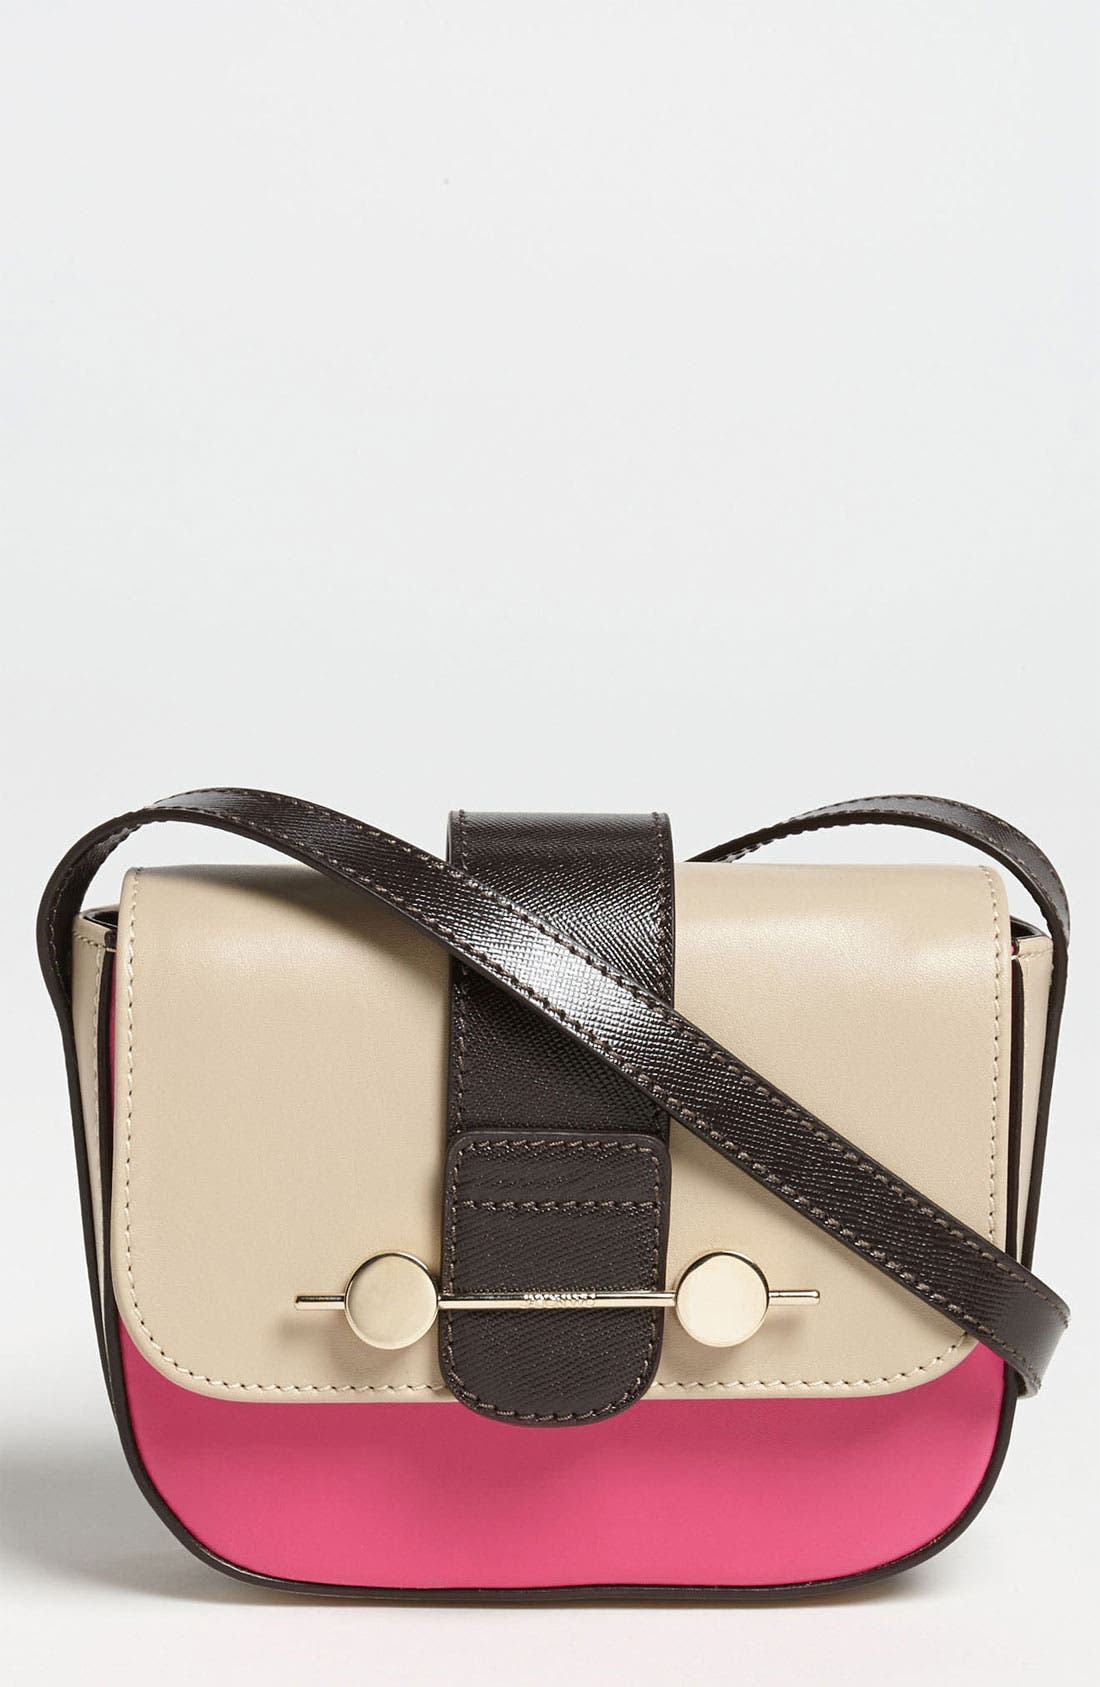 Alternate Image 1 Selected - Jason Wu 'Daphne - Mini' Crossbody Bag